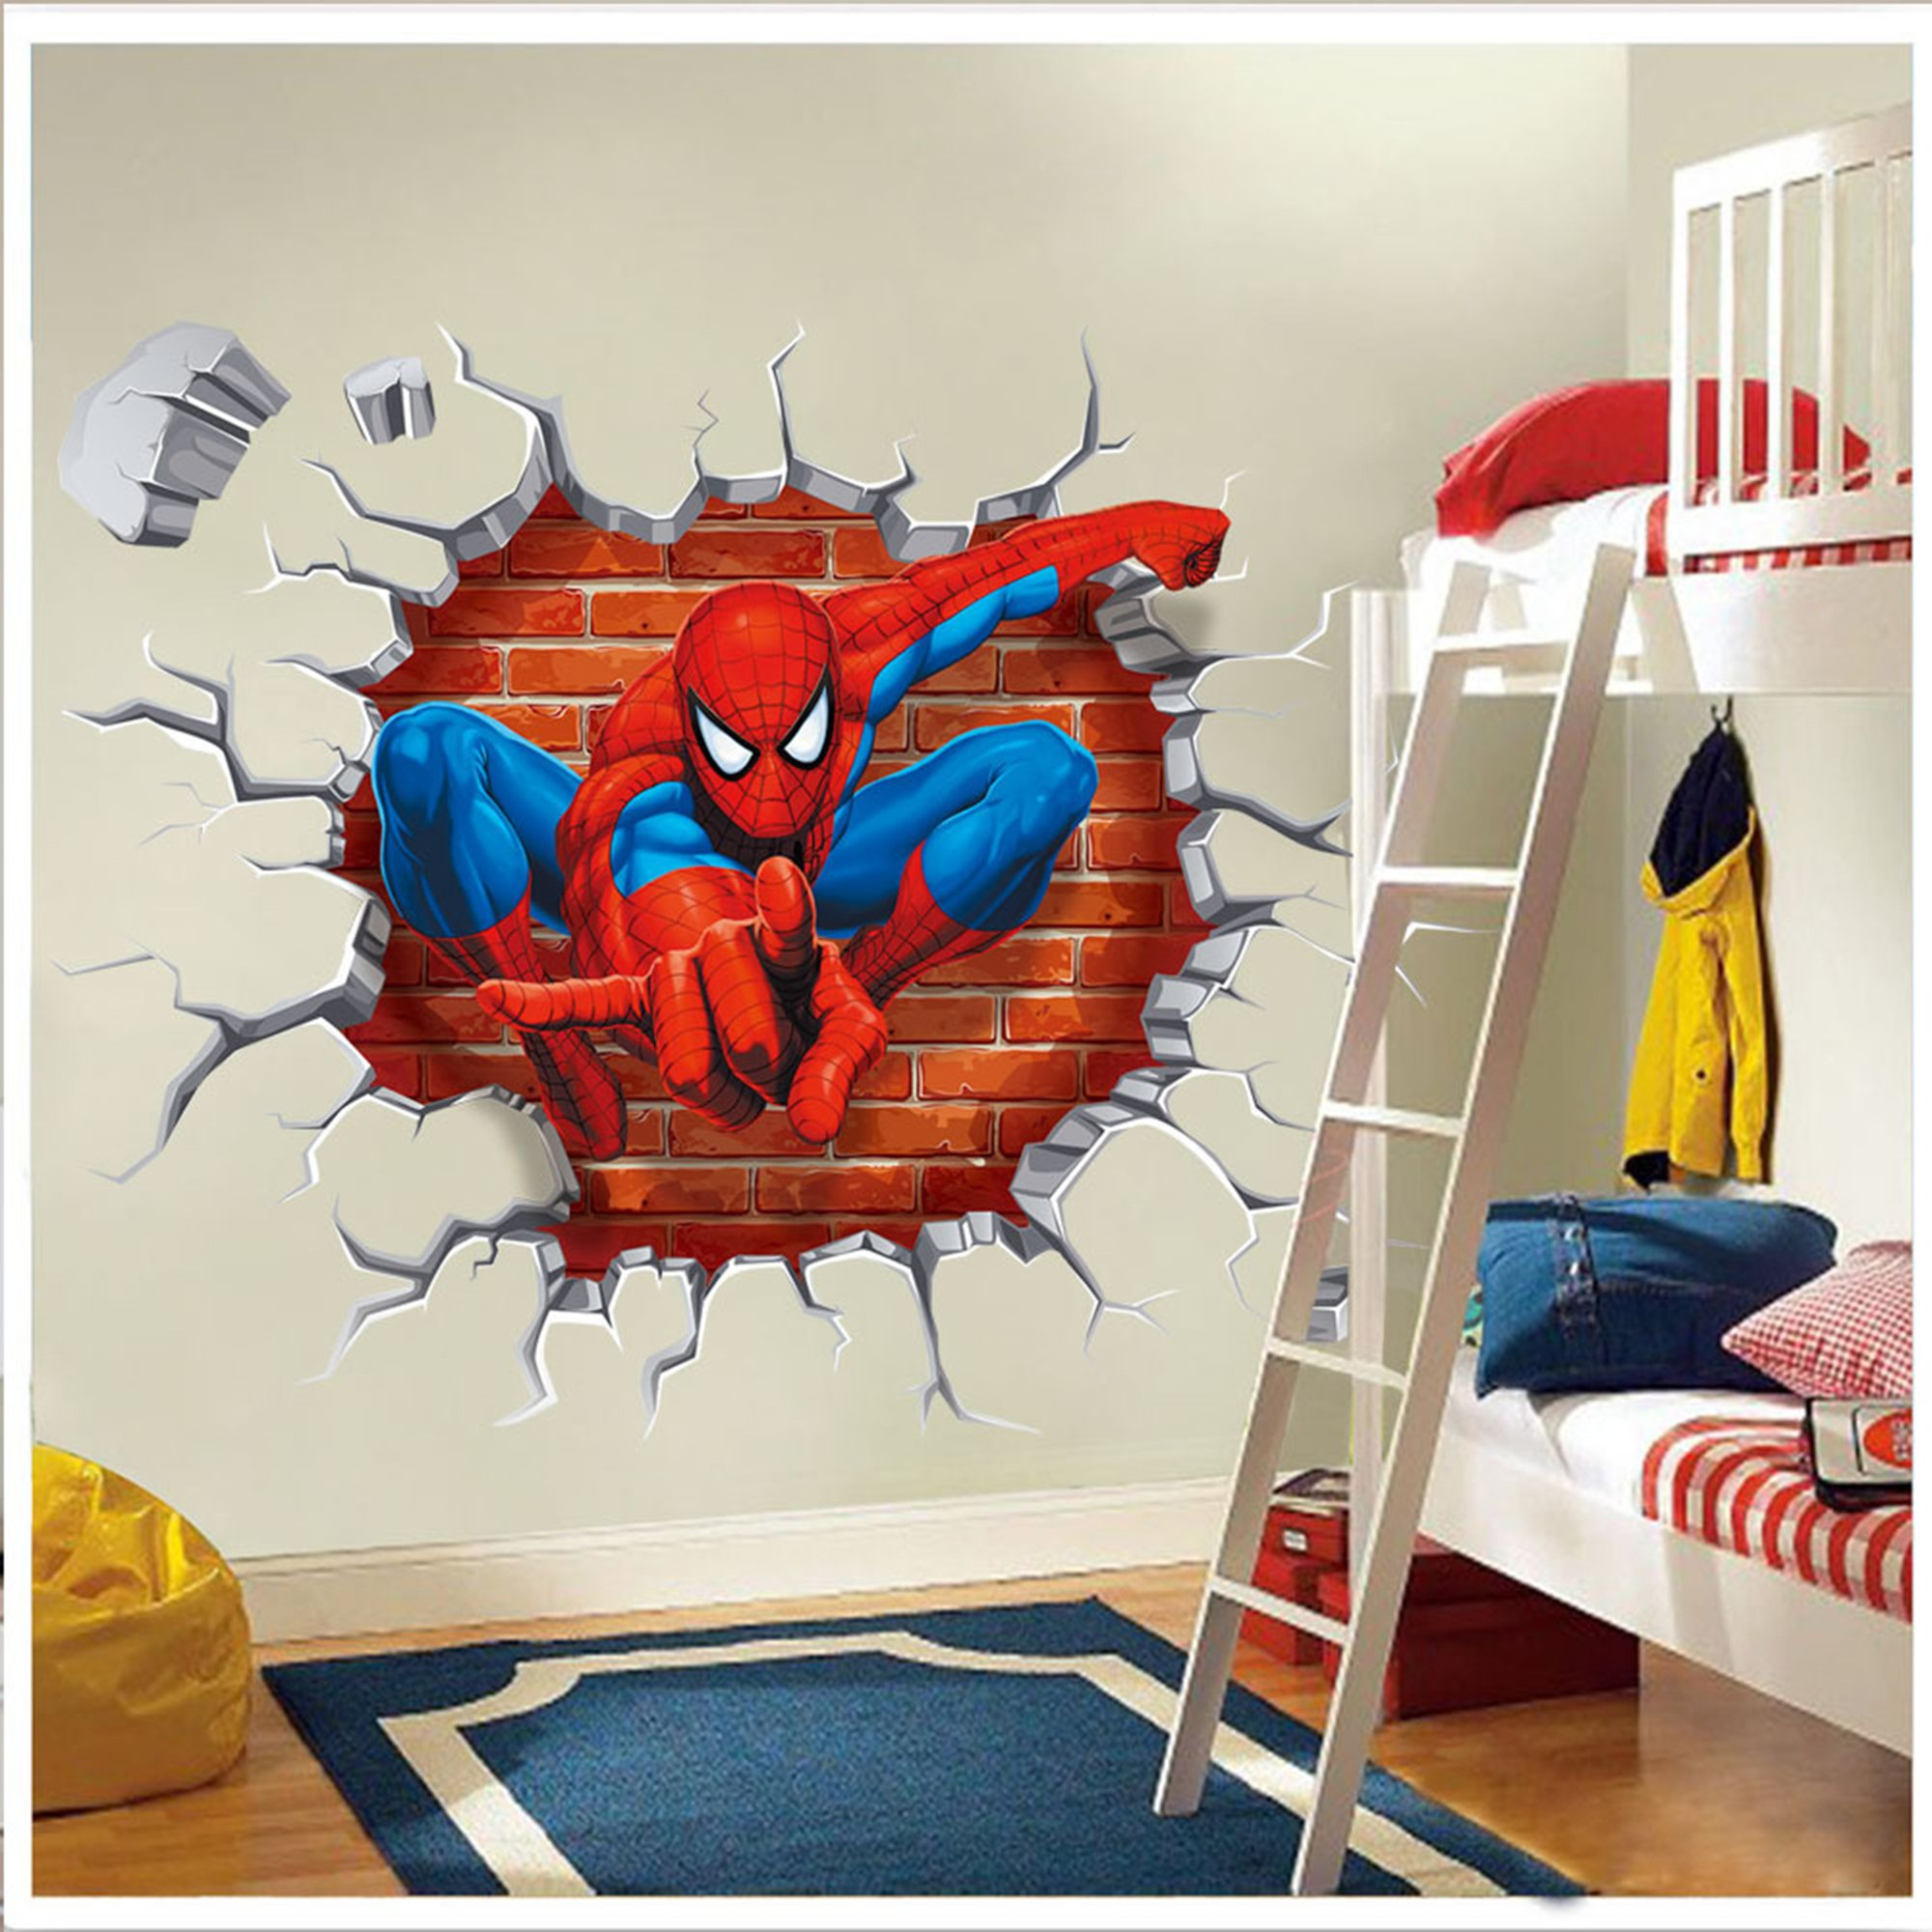 NOMSOCR 3D Wall Stickers, Vinyl Stickers DIY Family Decor Wall Art for Kids Living Room Bedroom Bathroom Tile Office Home Decoration (Spider Man) by NOMSOCR (Image #1)